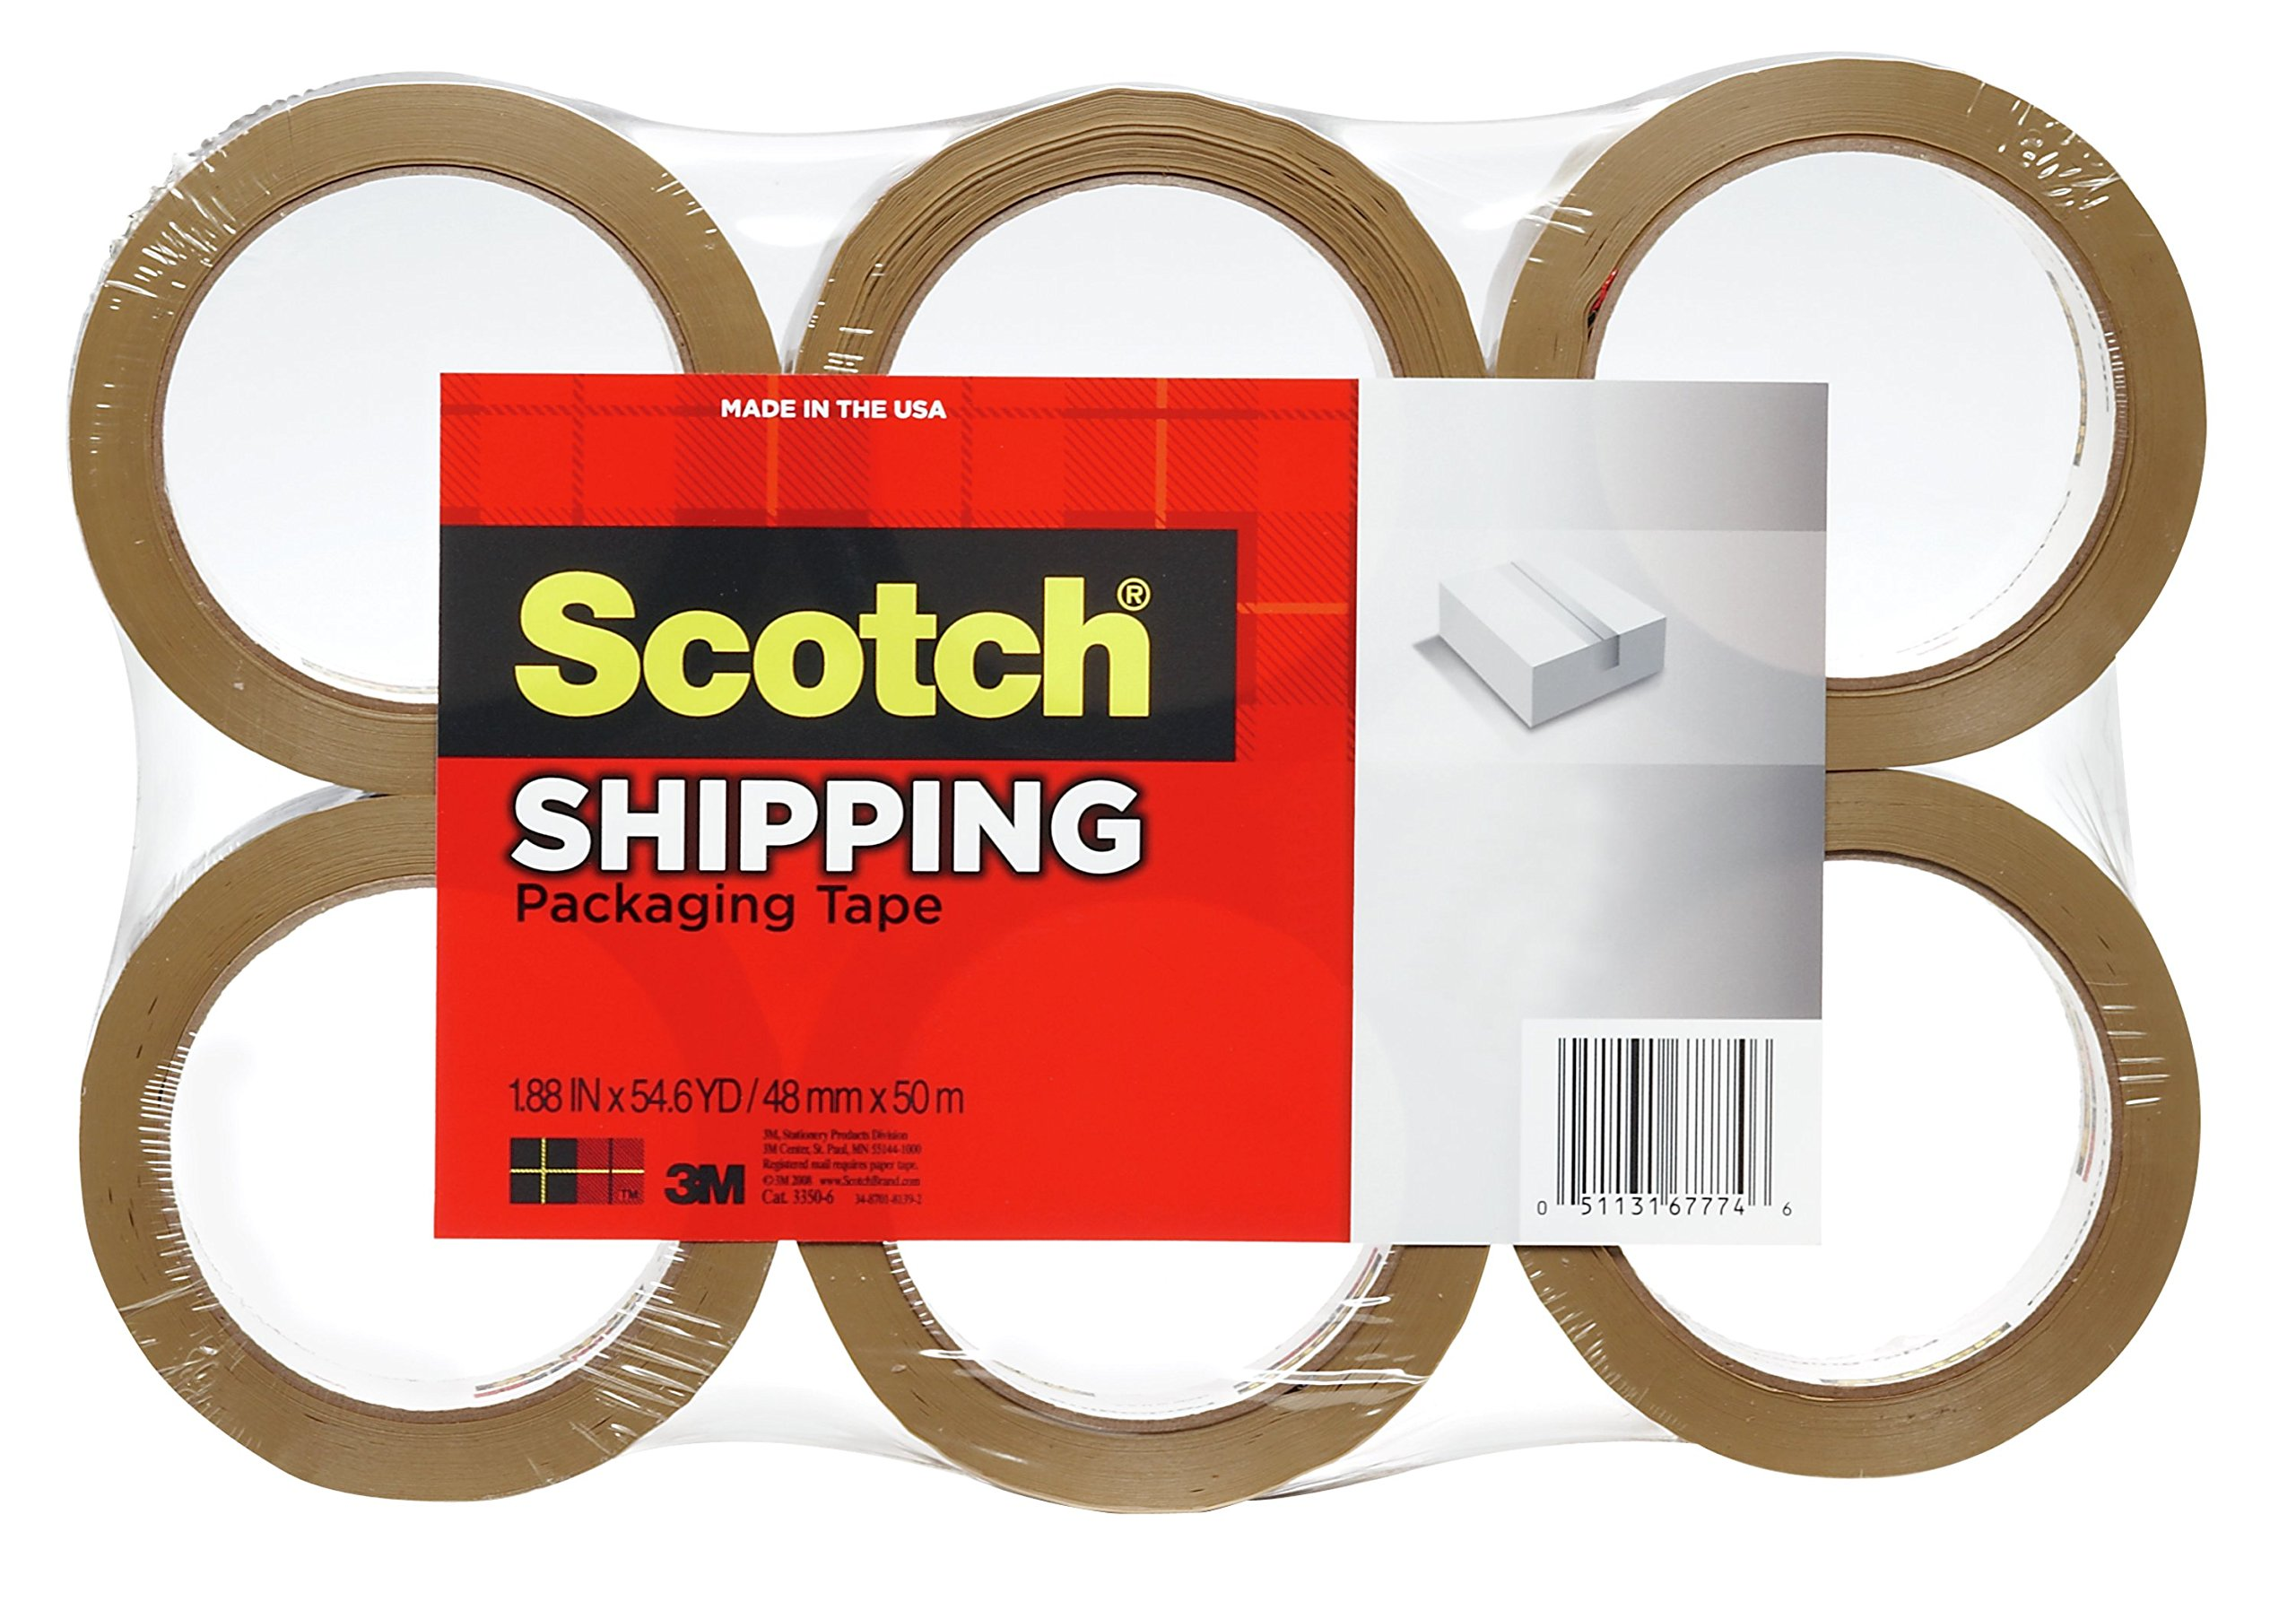 Scotch Lightweight Shipping Packaging Tape, 1.88 Inches x 54.6-Yards, Tan, 6 pack (3350T-6)